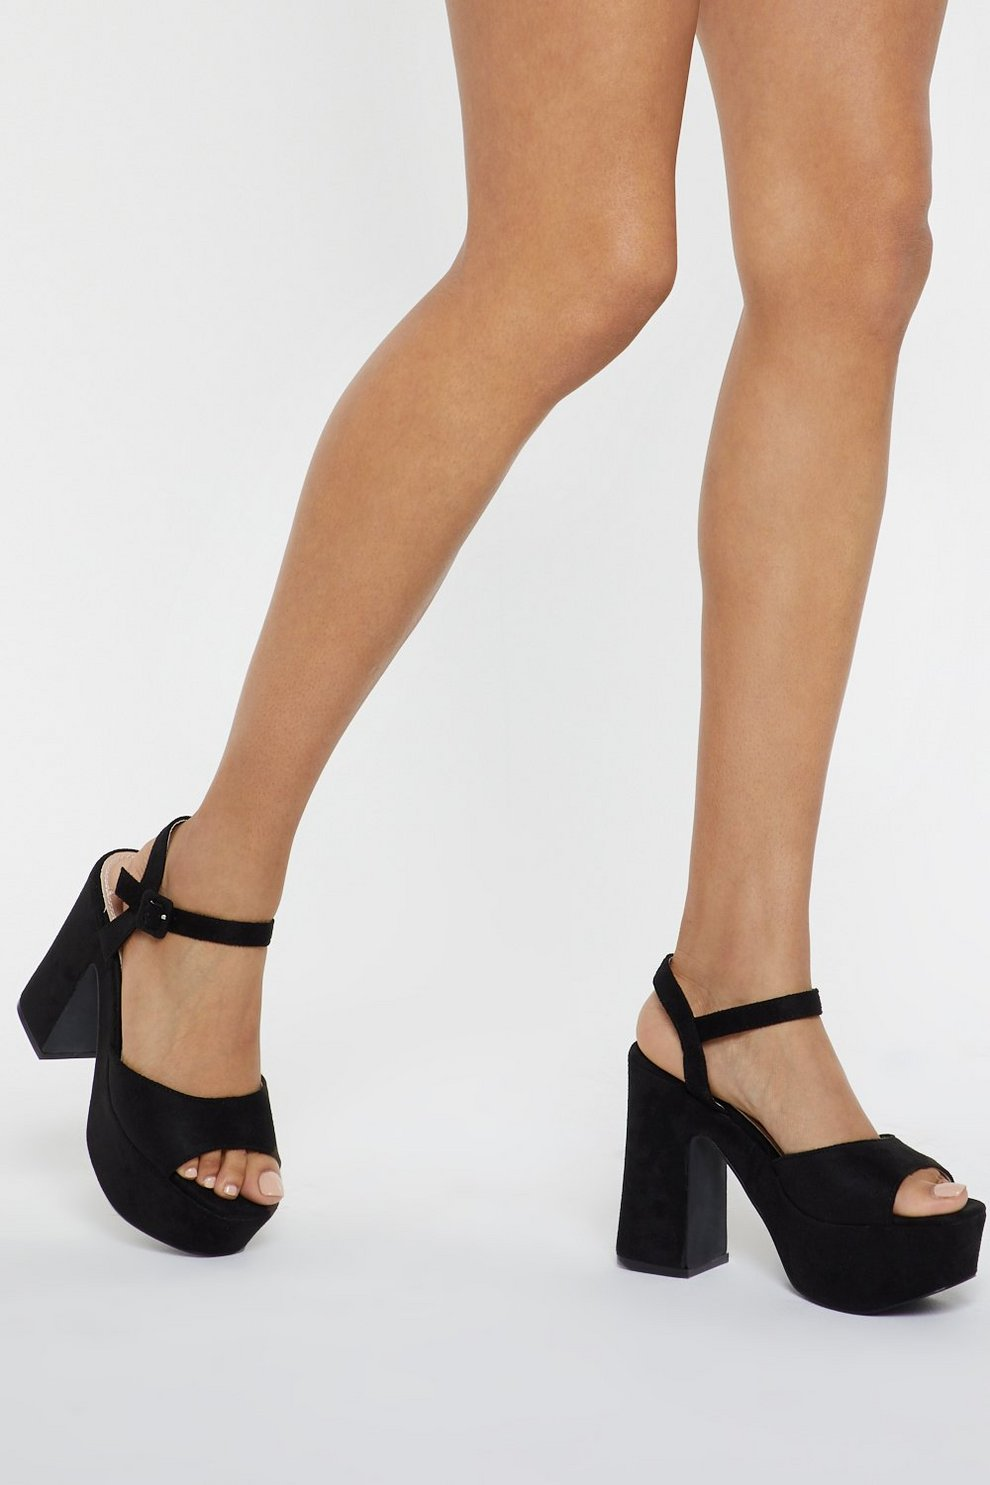 57124572ec Going Up Peep Toe Platform Heels | Shop Clothes at Nasty Gal!